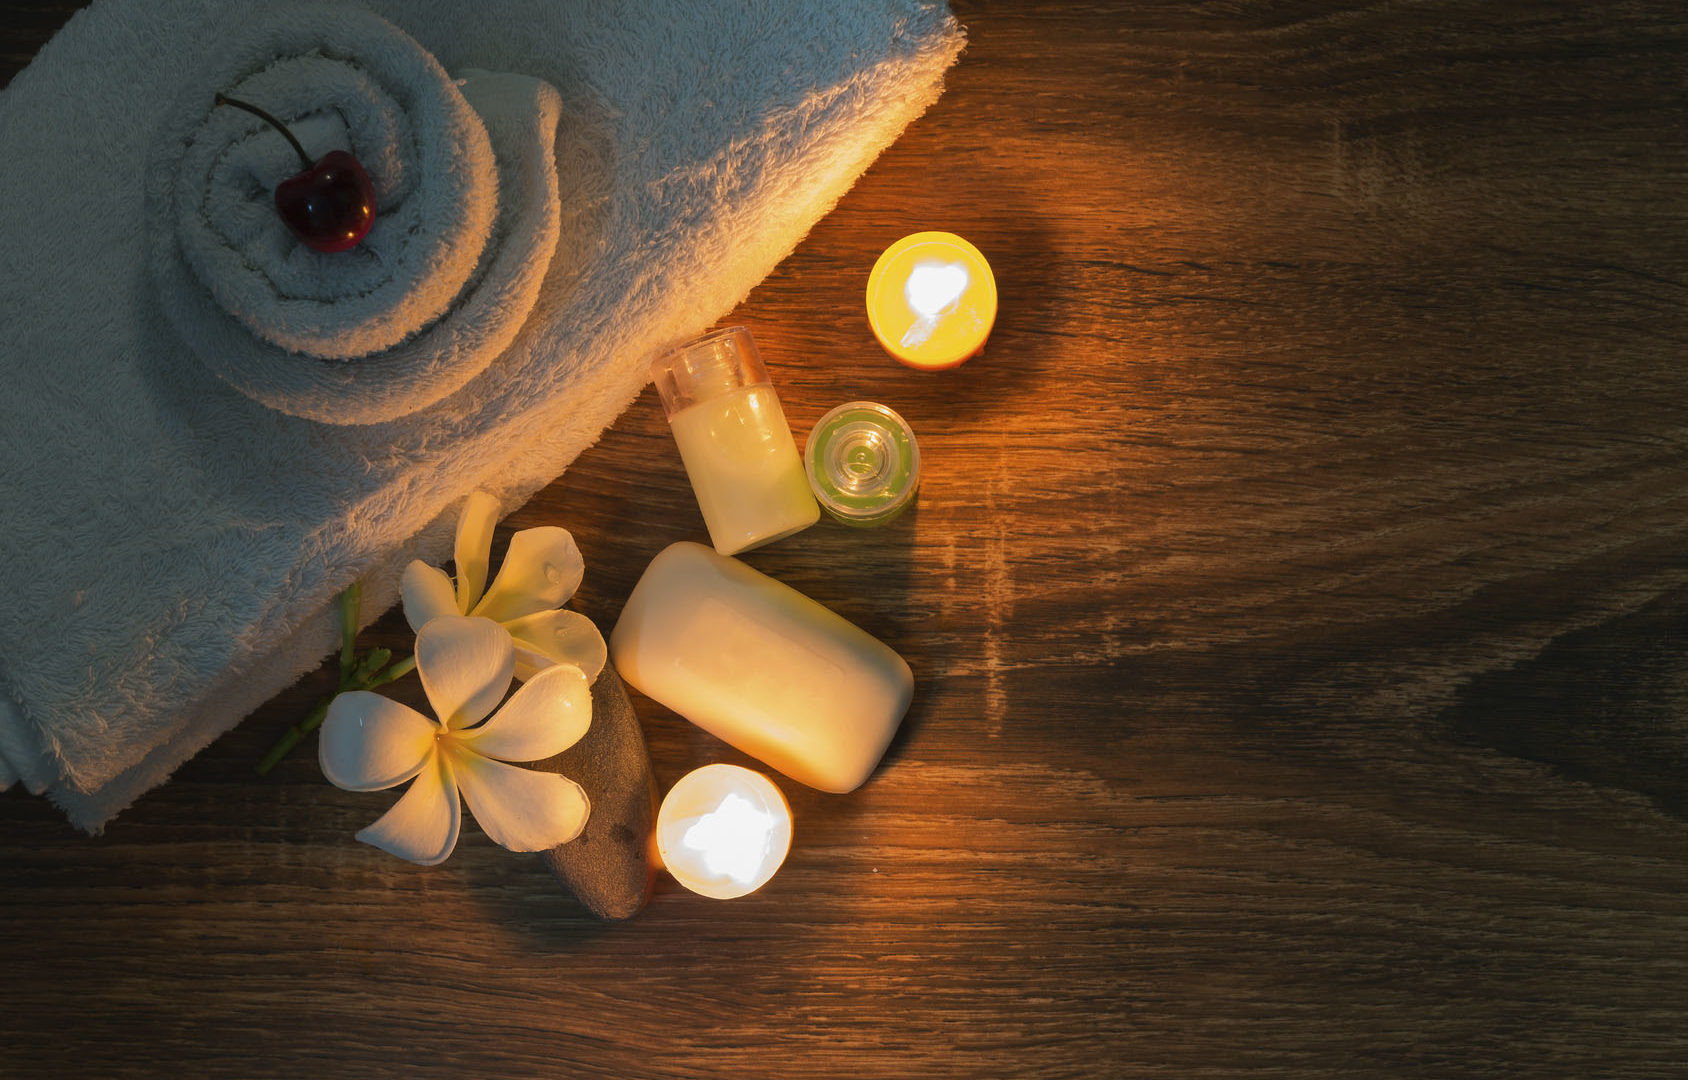 A home spa setting with natural soap and candles on night